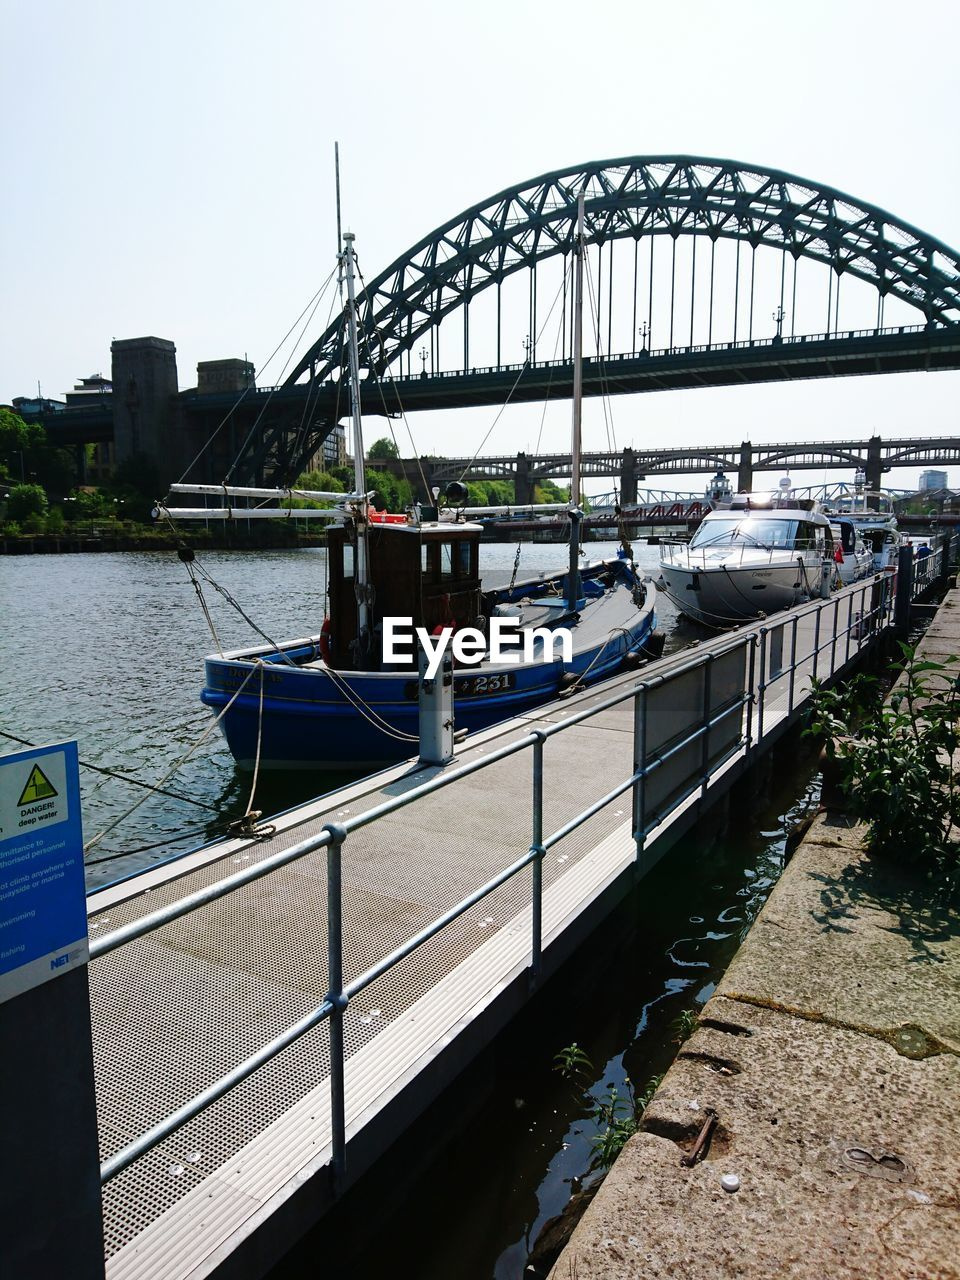 Boats moored in river against tyne bridge